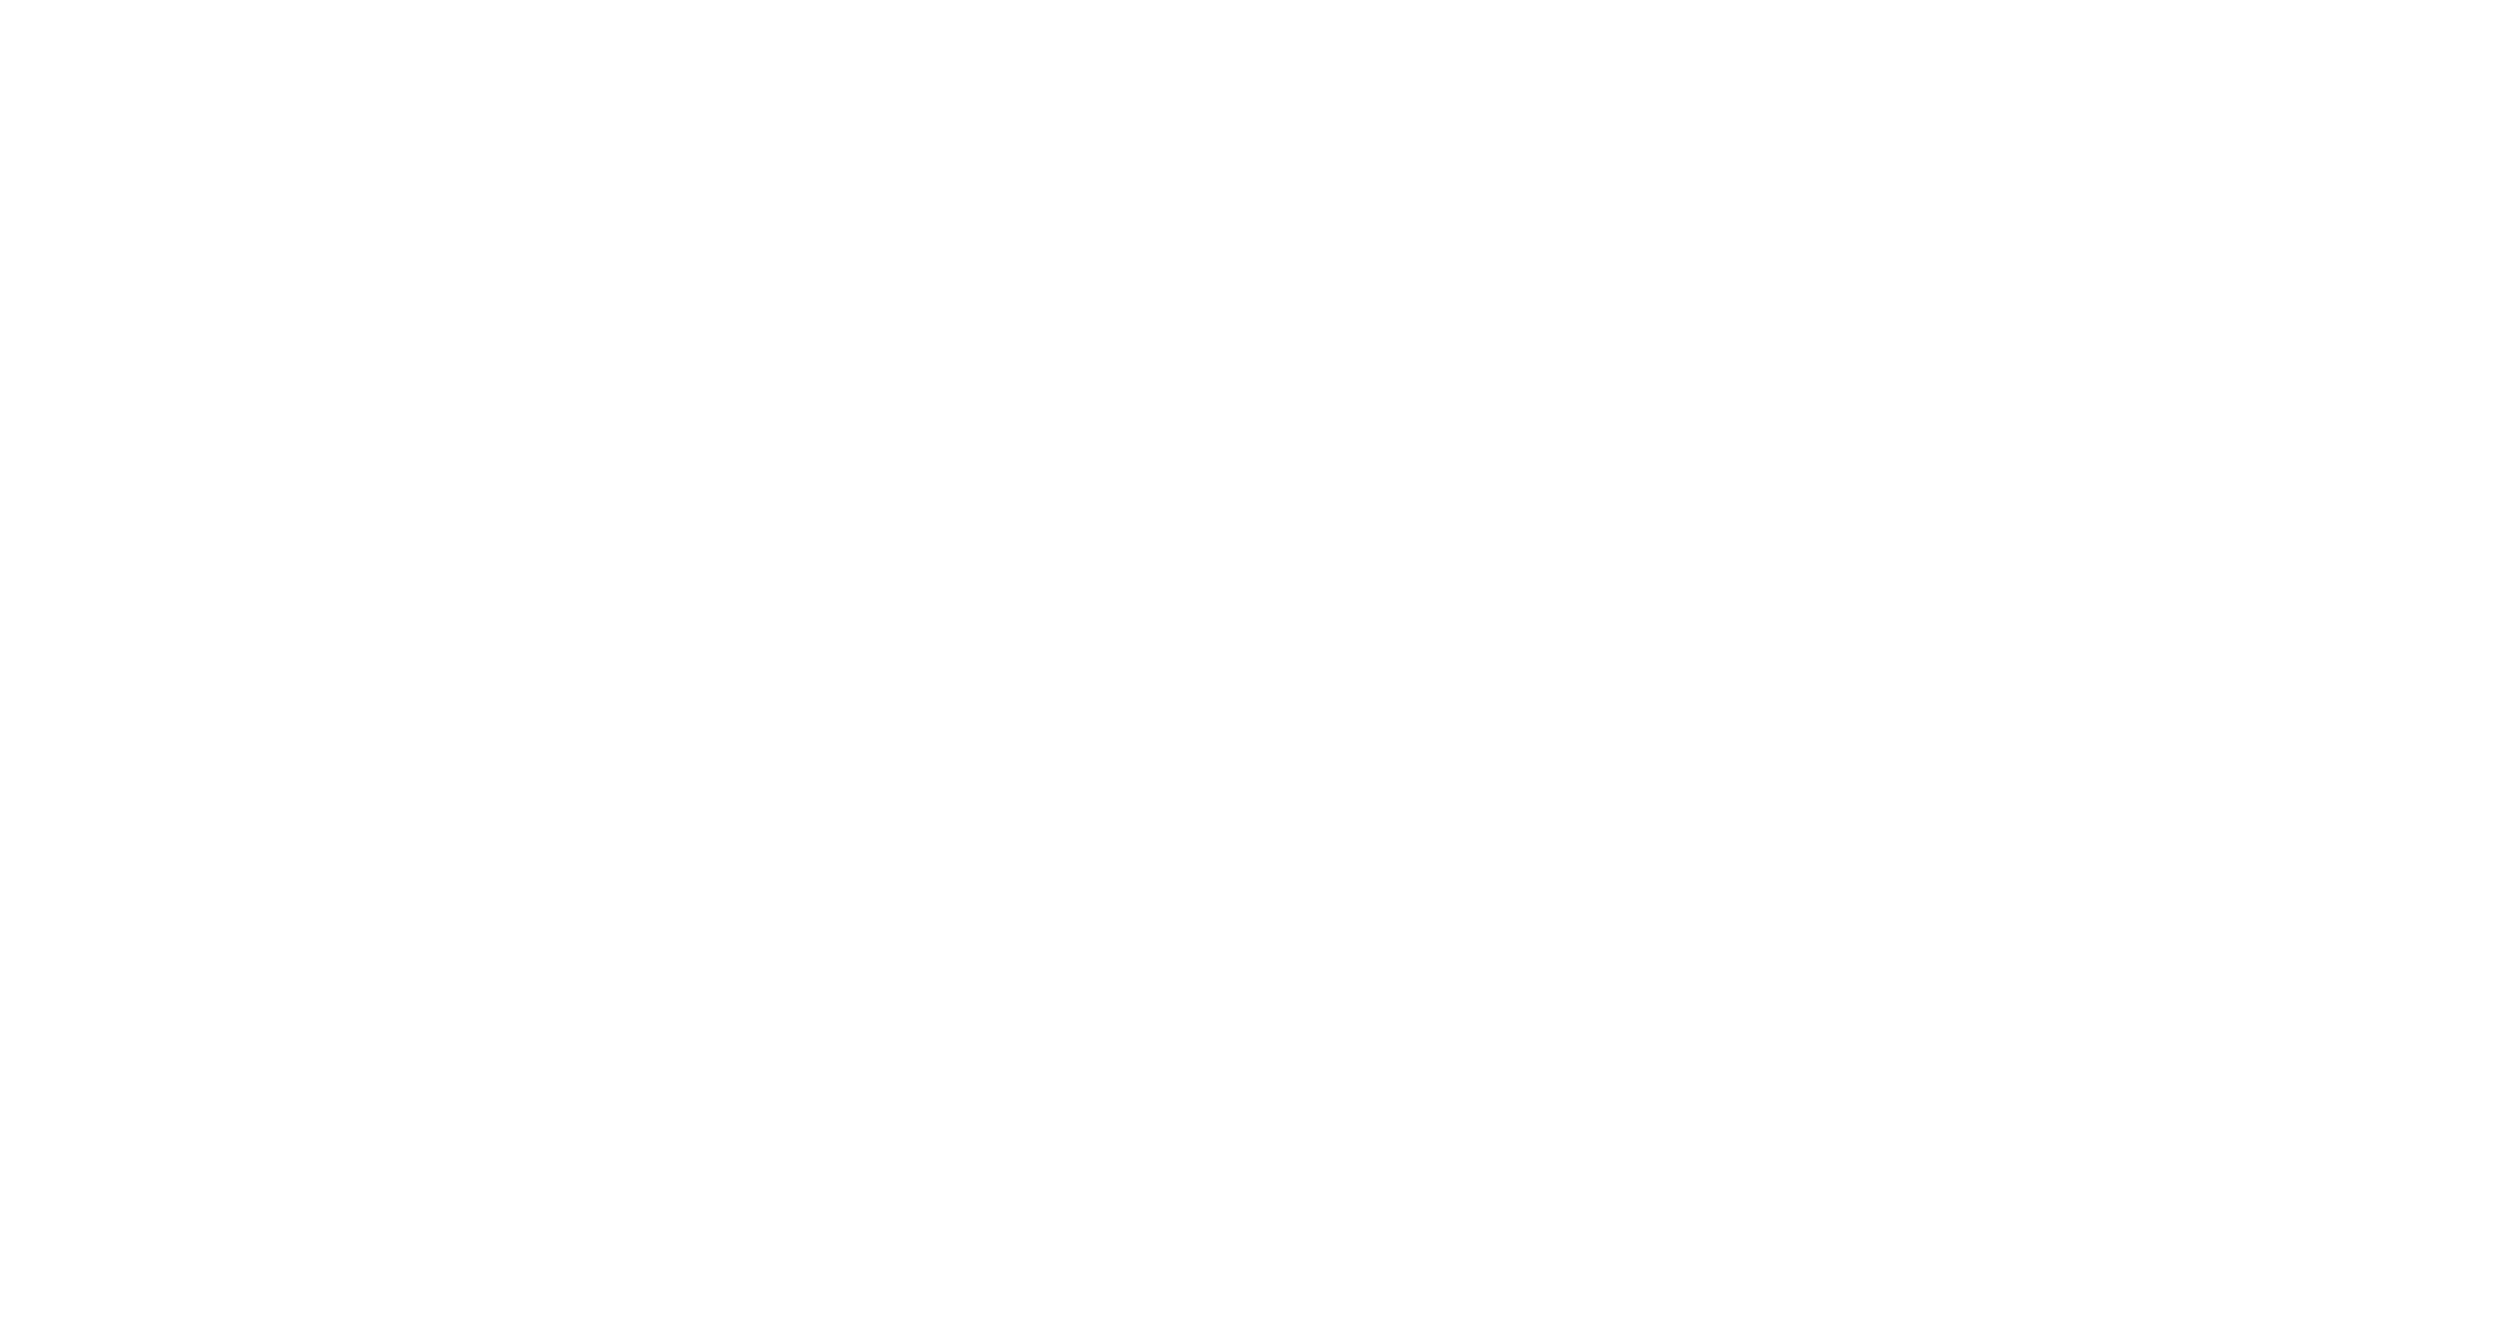 AC|DC Emcee Services